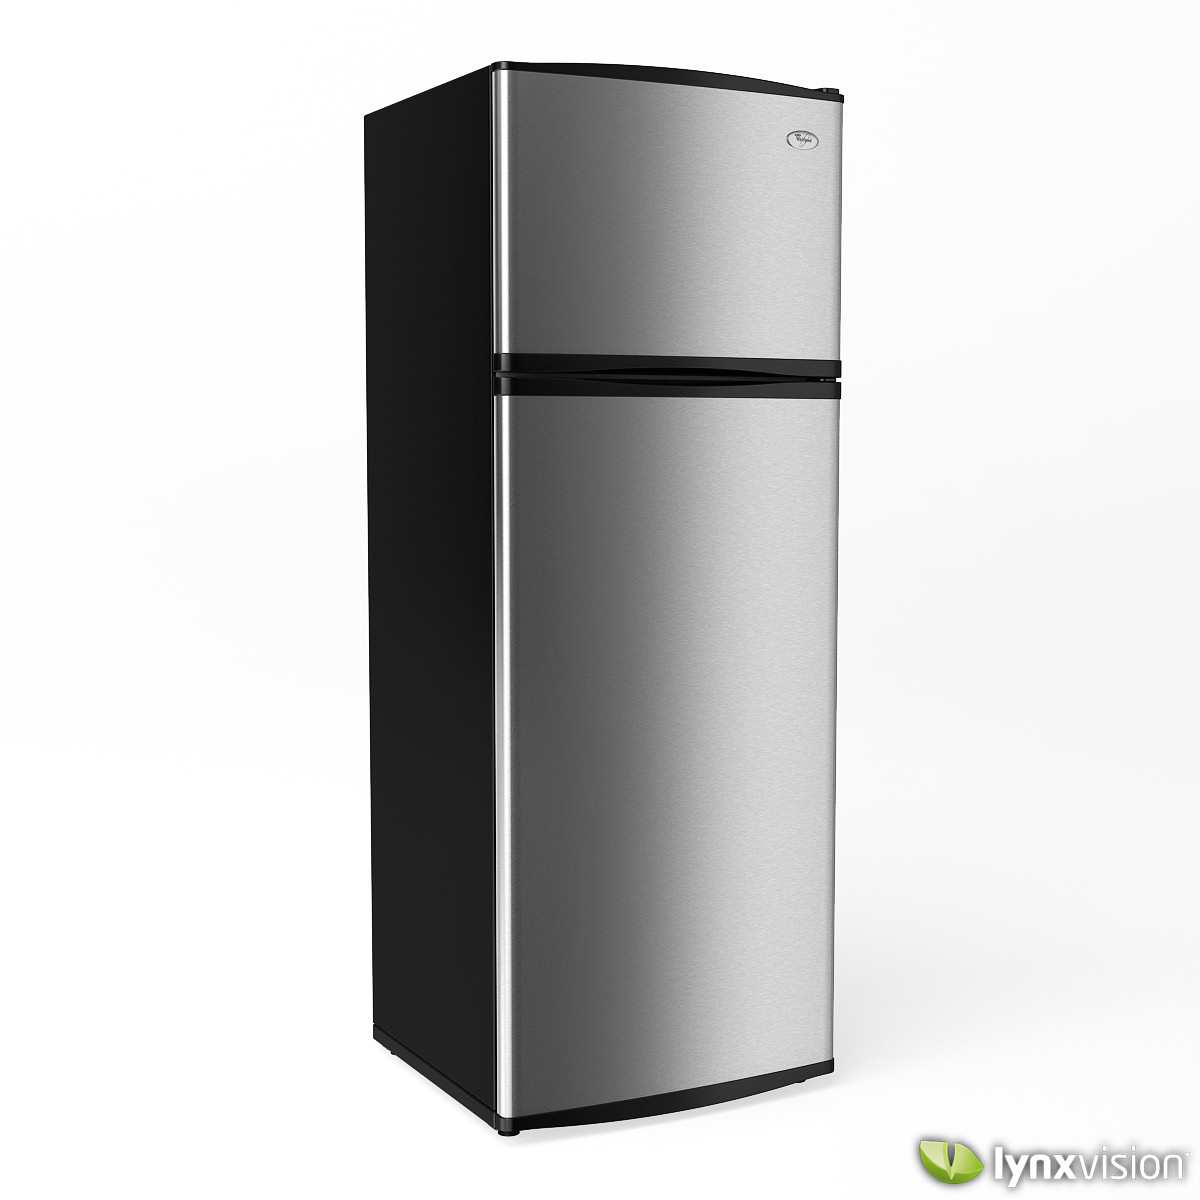 whirlpool refrigerator 3d model max obj fbx. Black Bedroom Furniture Sets. Home Design Ideas